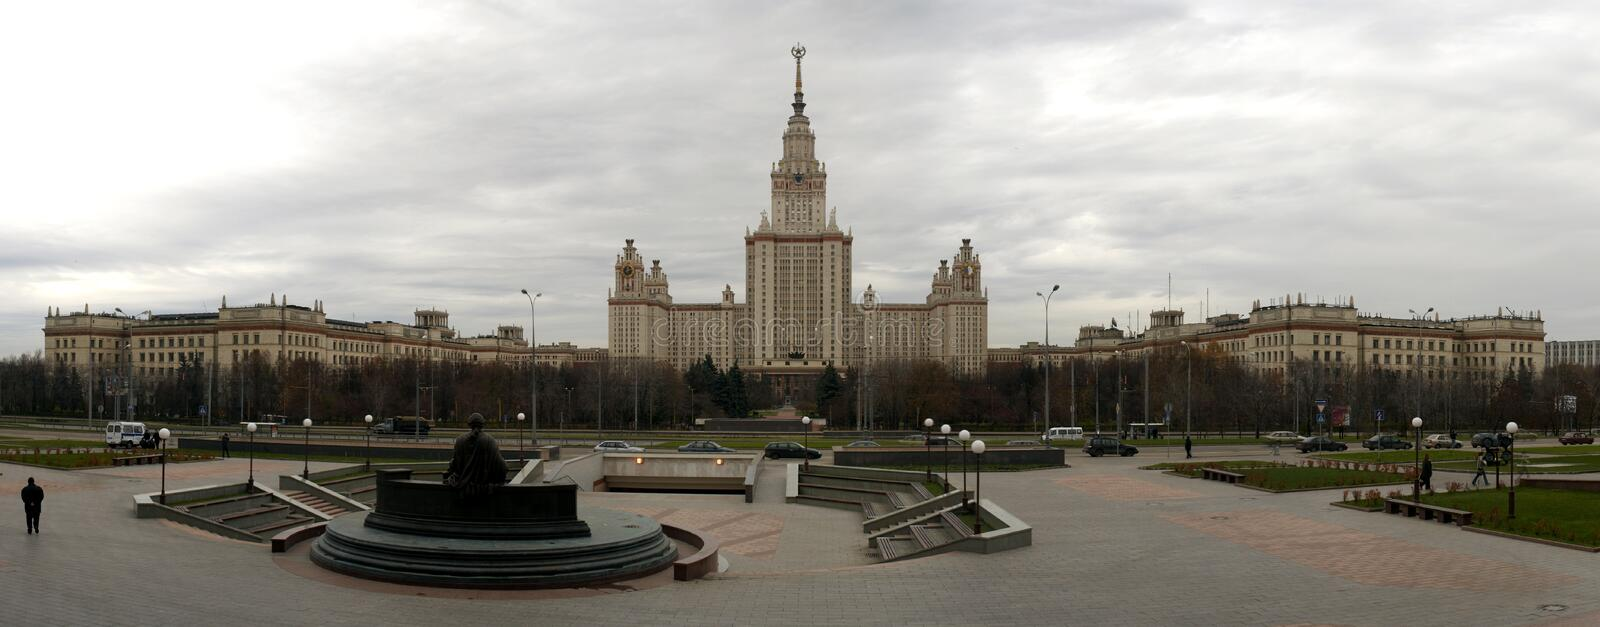 moscow state university obrazy stock